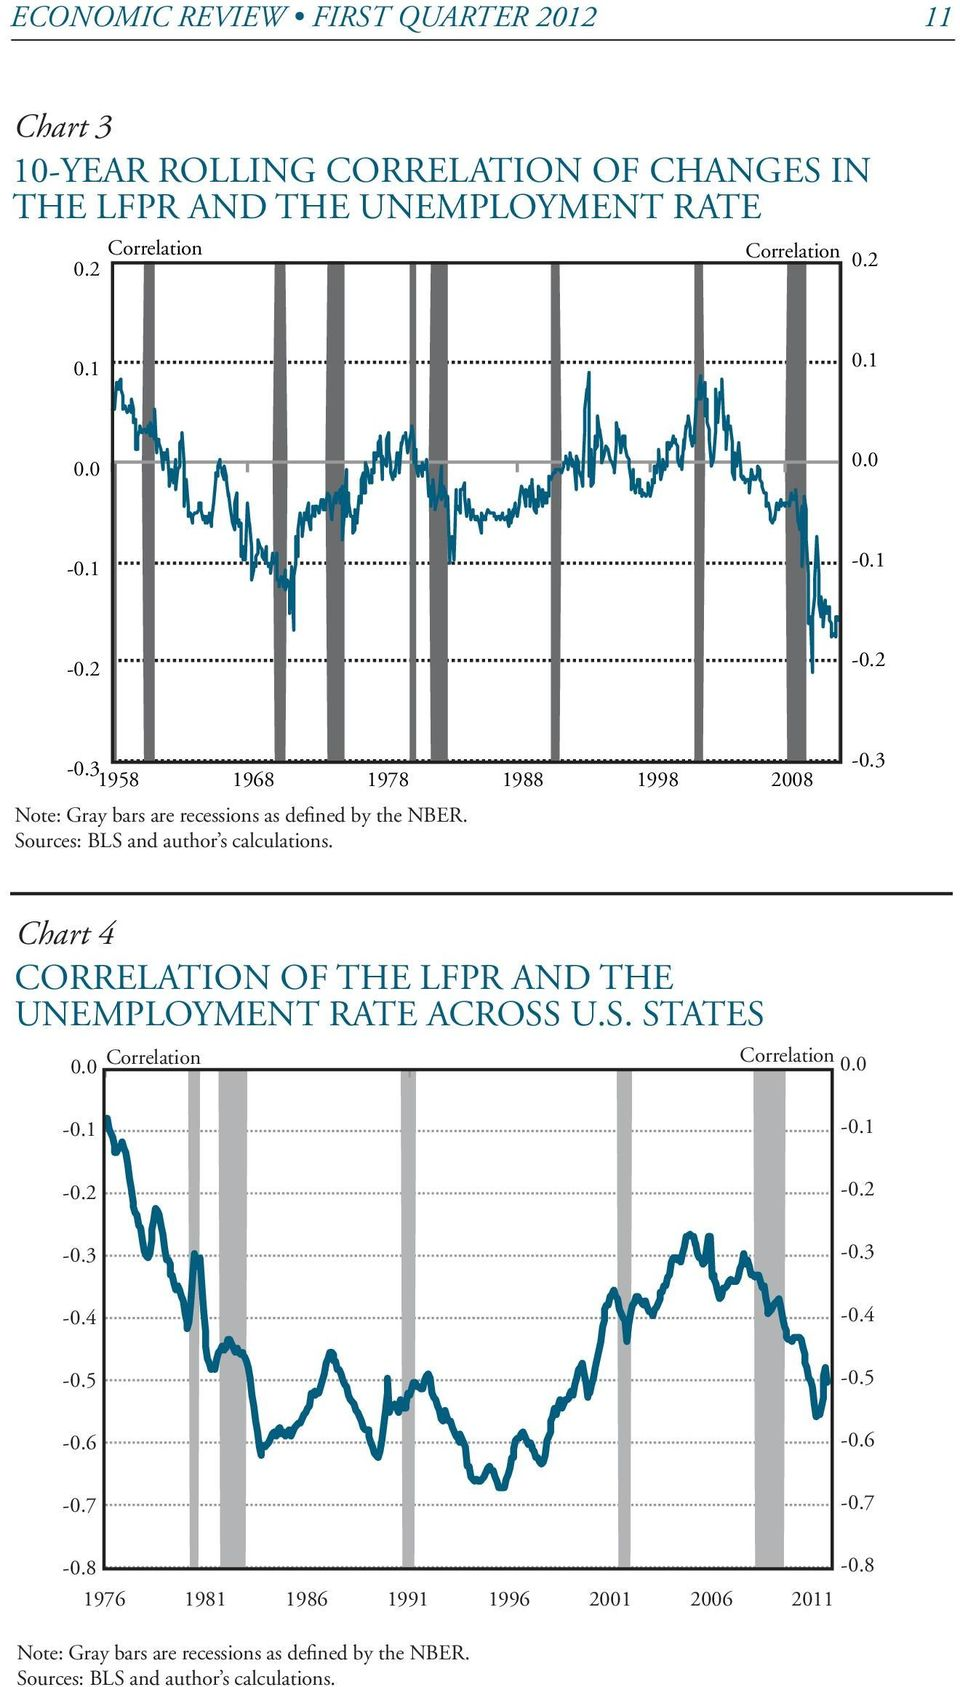 Sources: BLS and author s calculations. -0.3 Chart 4 CORRELATION OF THE LFPR AND THE UNEMPLOYMENT RATE ACROSS U.S. STATES 0.0 Correlation Correlation 0.0-0.